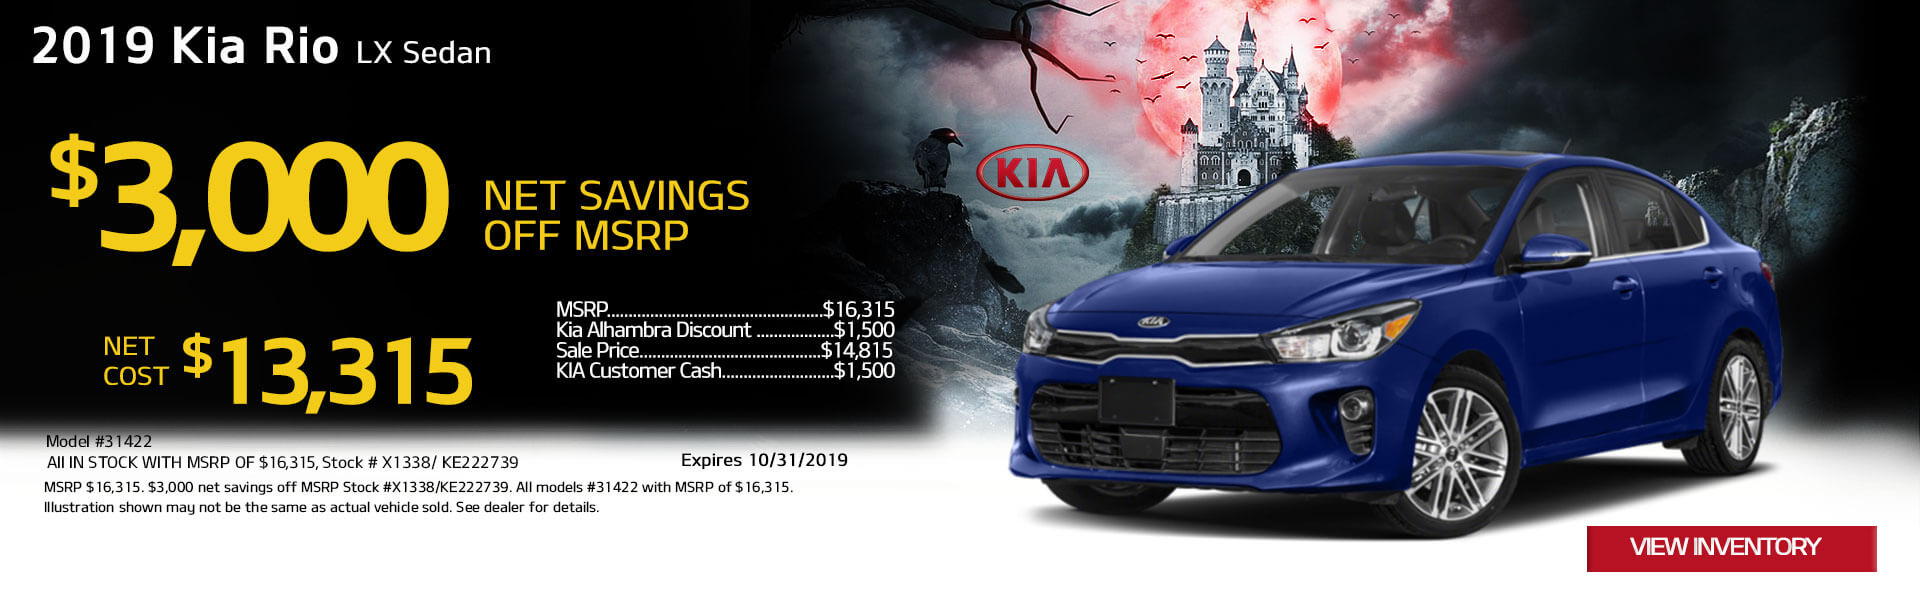 Check out the Rio for sale only at Kia of Alhambra